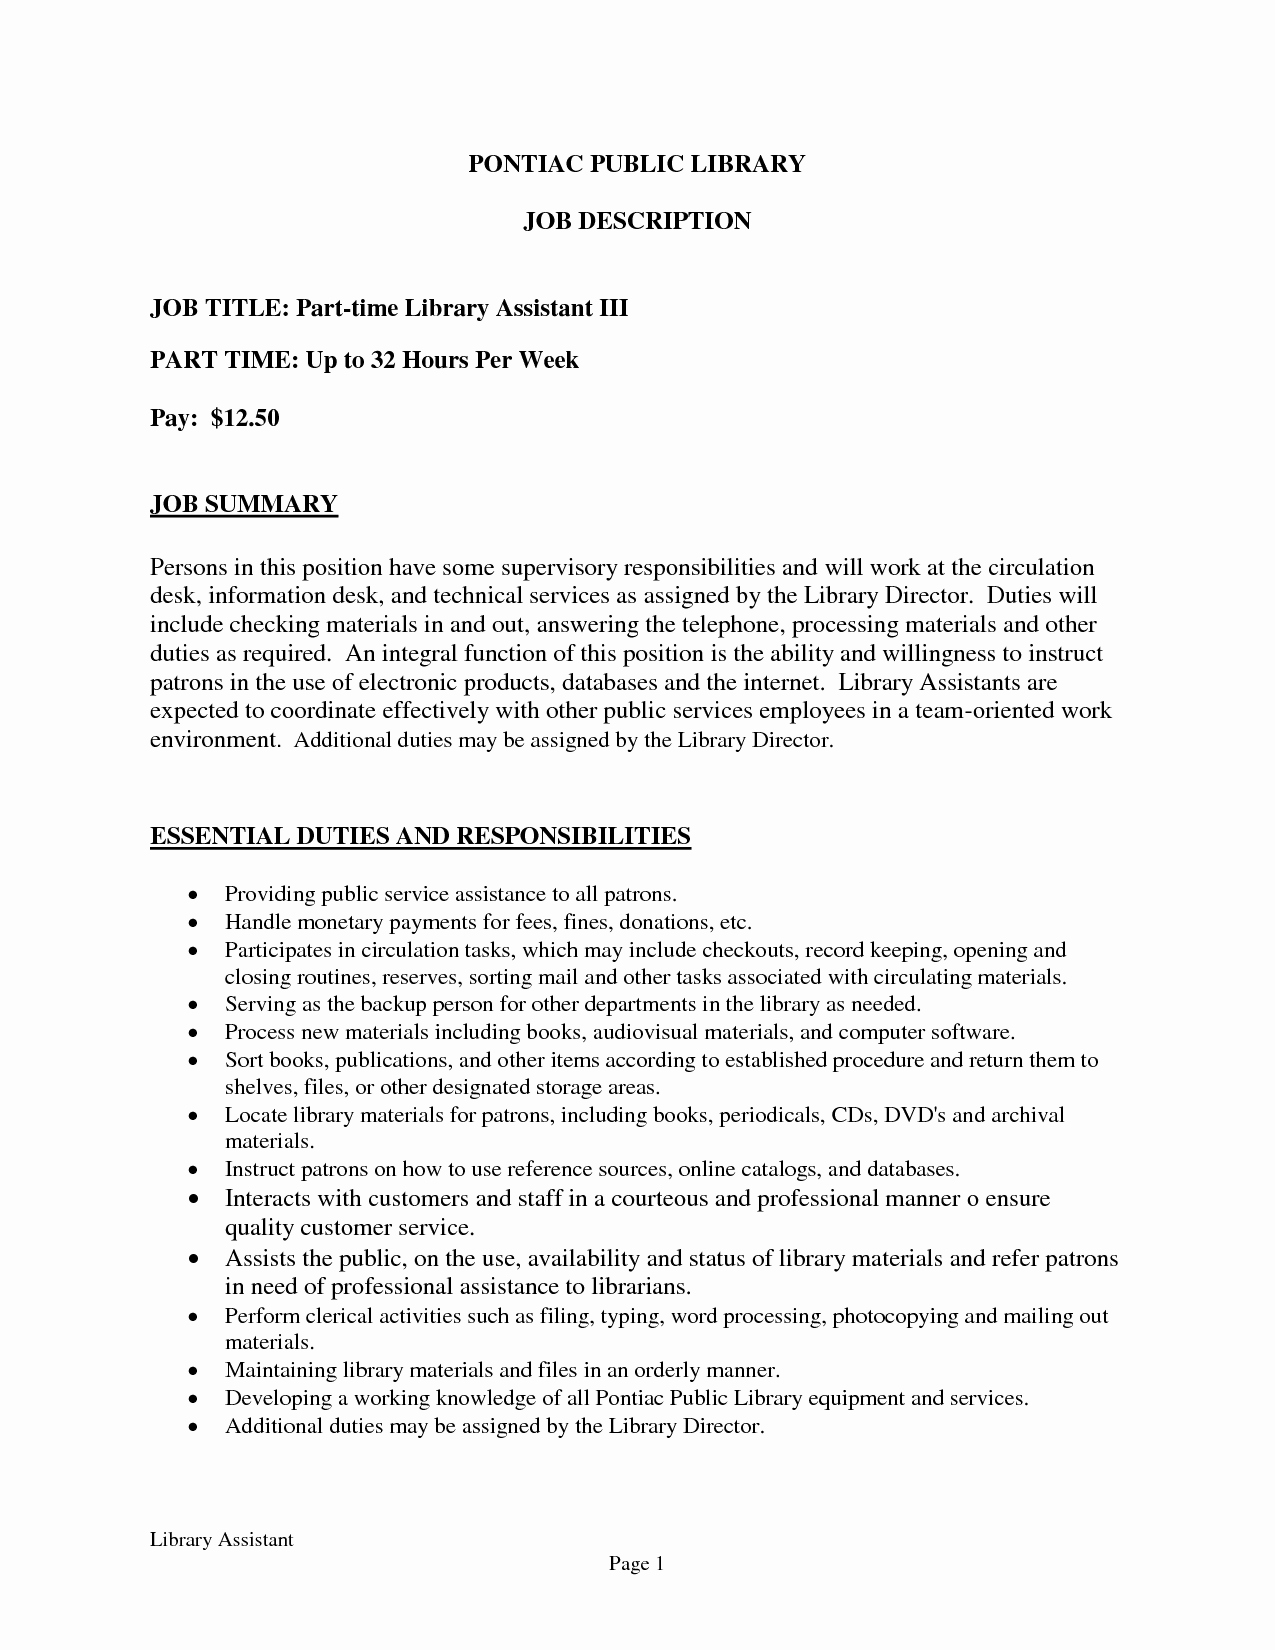 Sample Resume Objective For Library Assistant